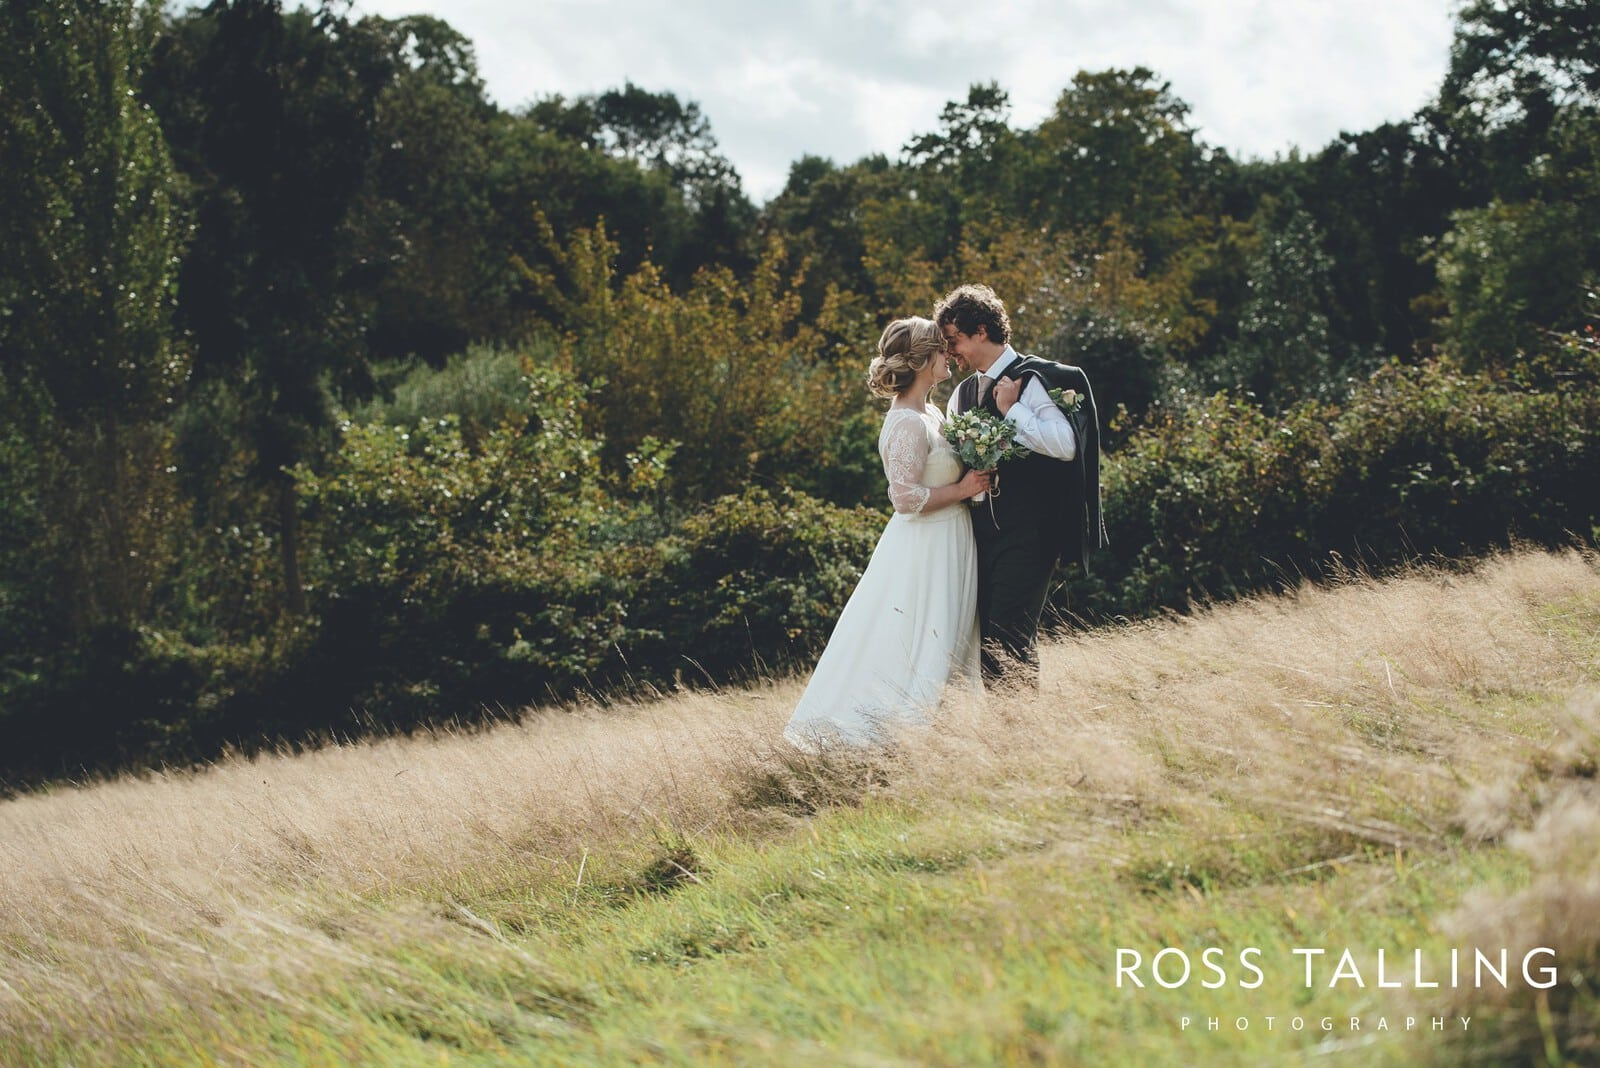 Wedding Photography at The Green Cornwall by Ross Talling_0057